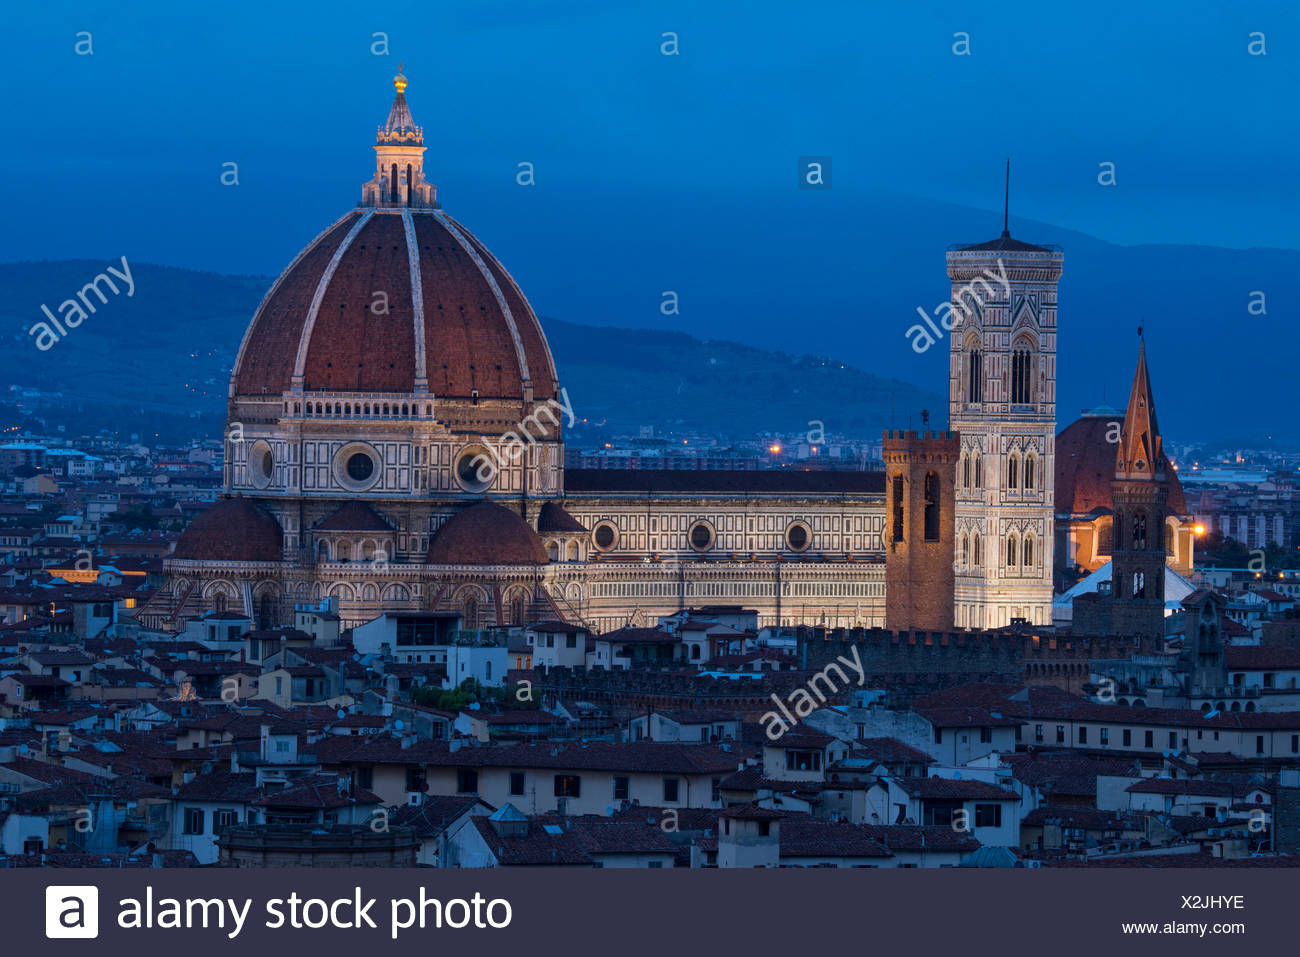 Europe, Italy, Tuscany, Toscana, Firence, Florence, Cathedral of Saint Mary of the Flower Cattedrale di Santa Maria del Fiore - Stock Image